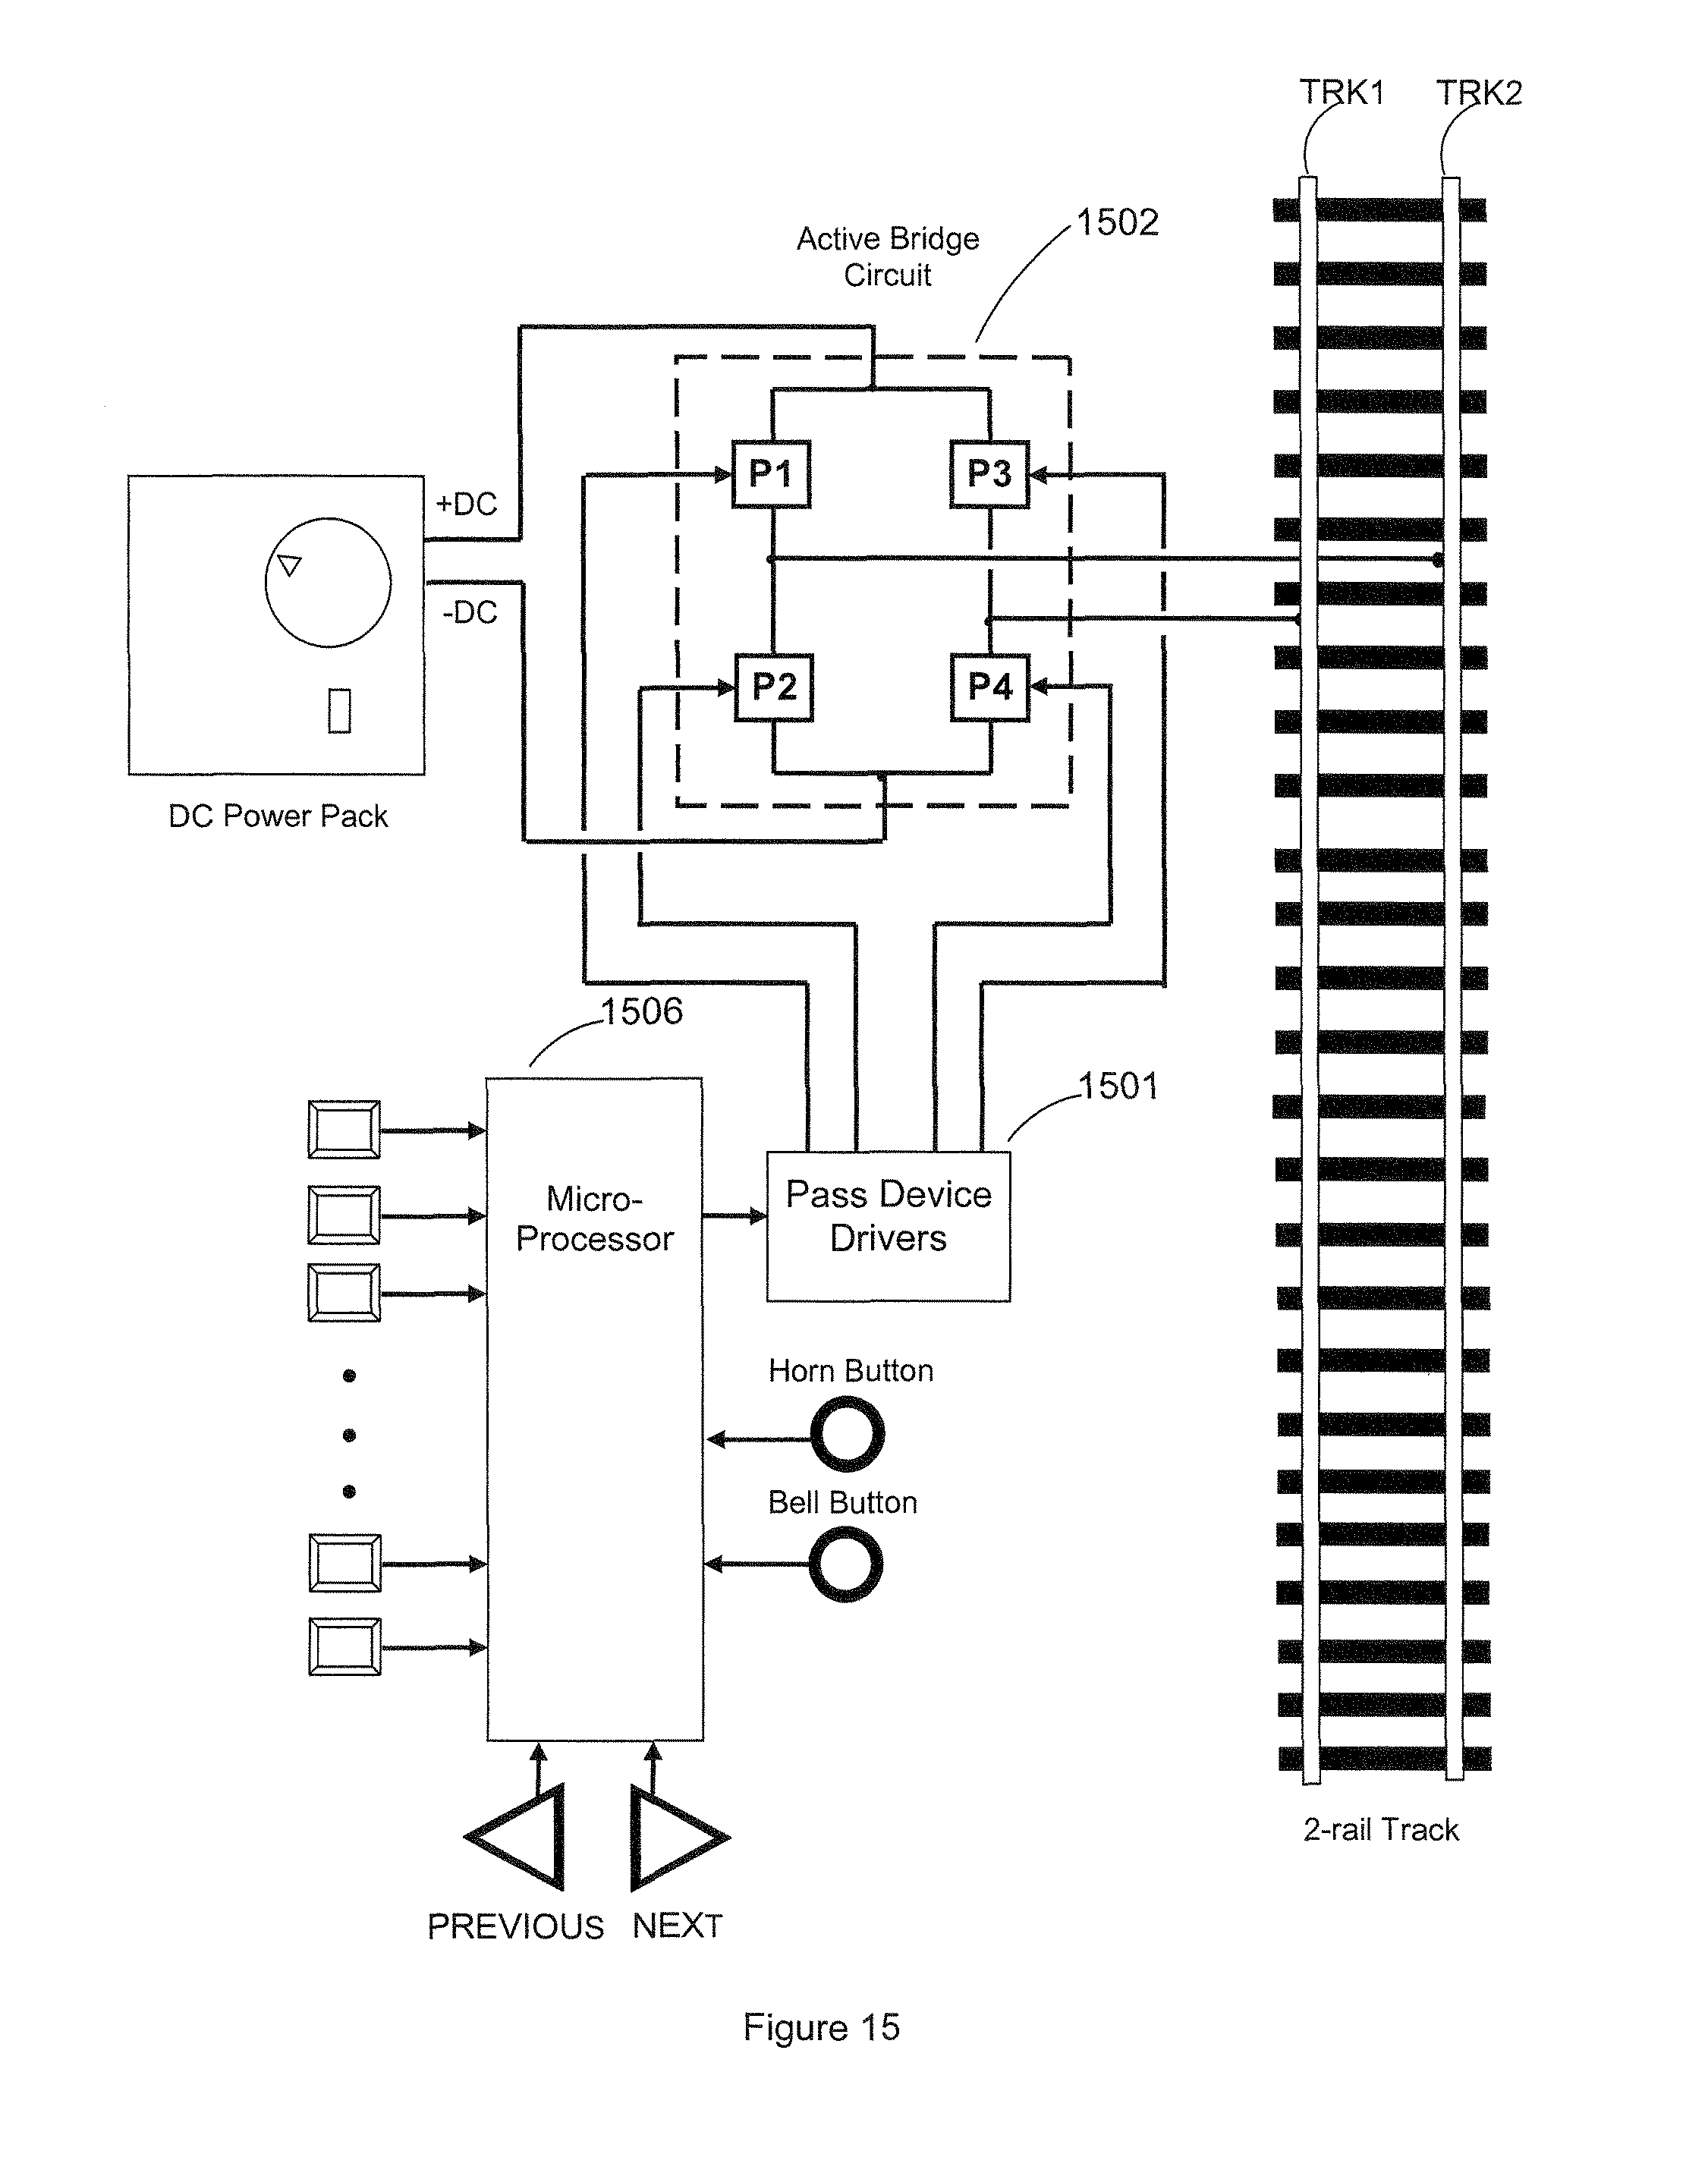 Patente Us8070108 Signaling And Remote Control Train Operation Adc0808 8211 Simple Analoque To Digital Converter Patent Drawing